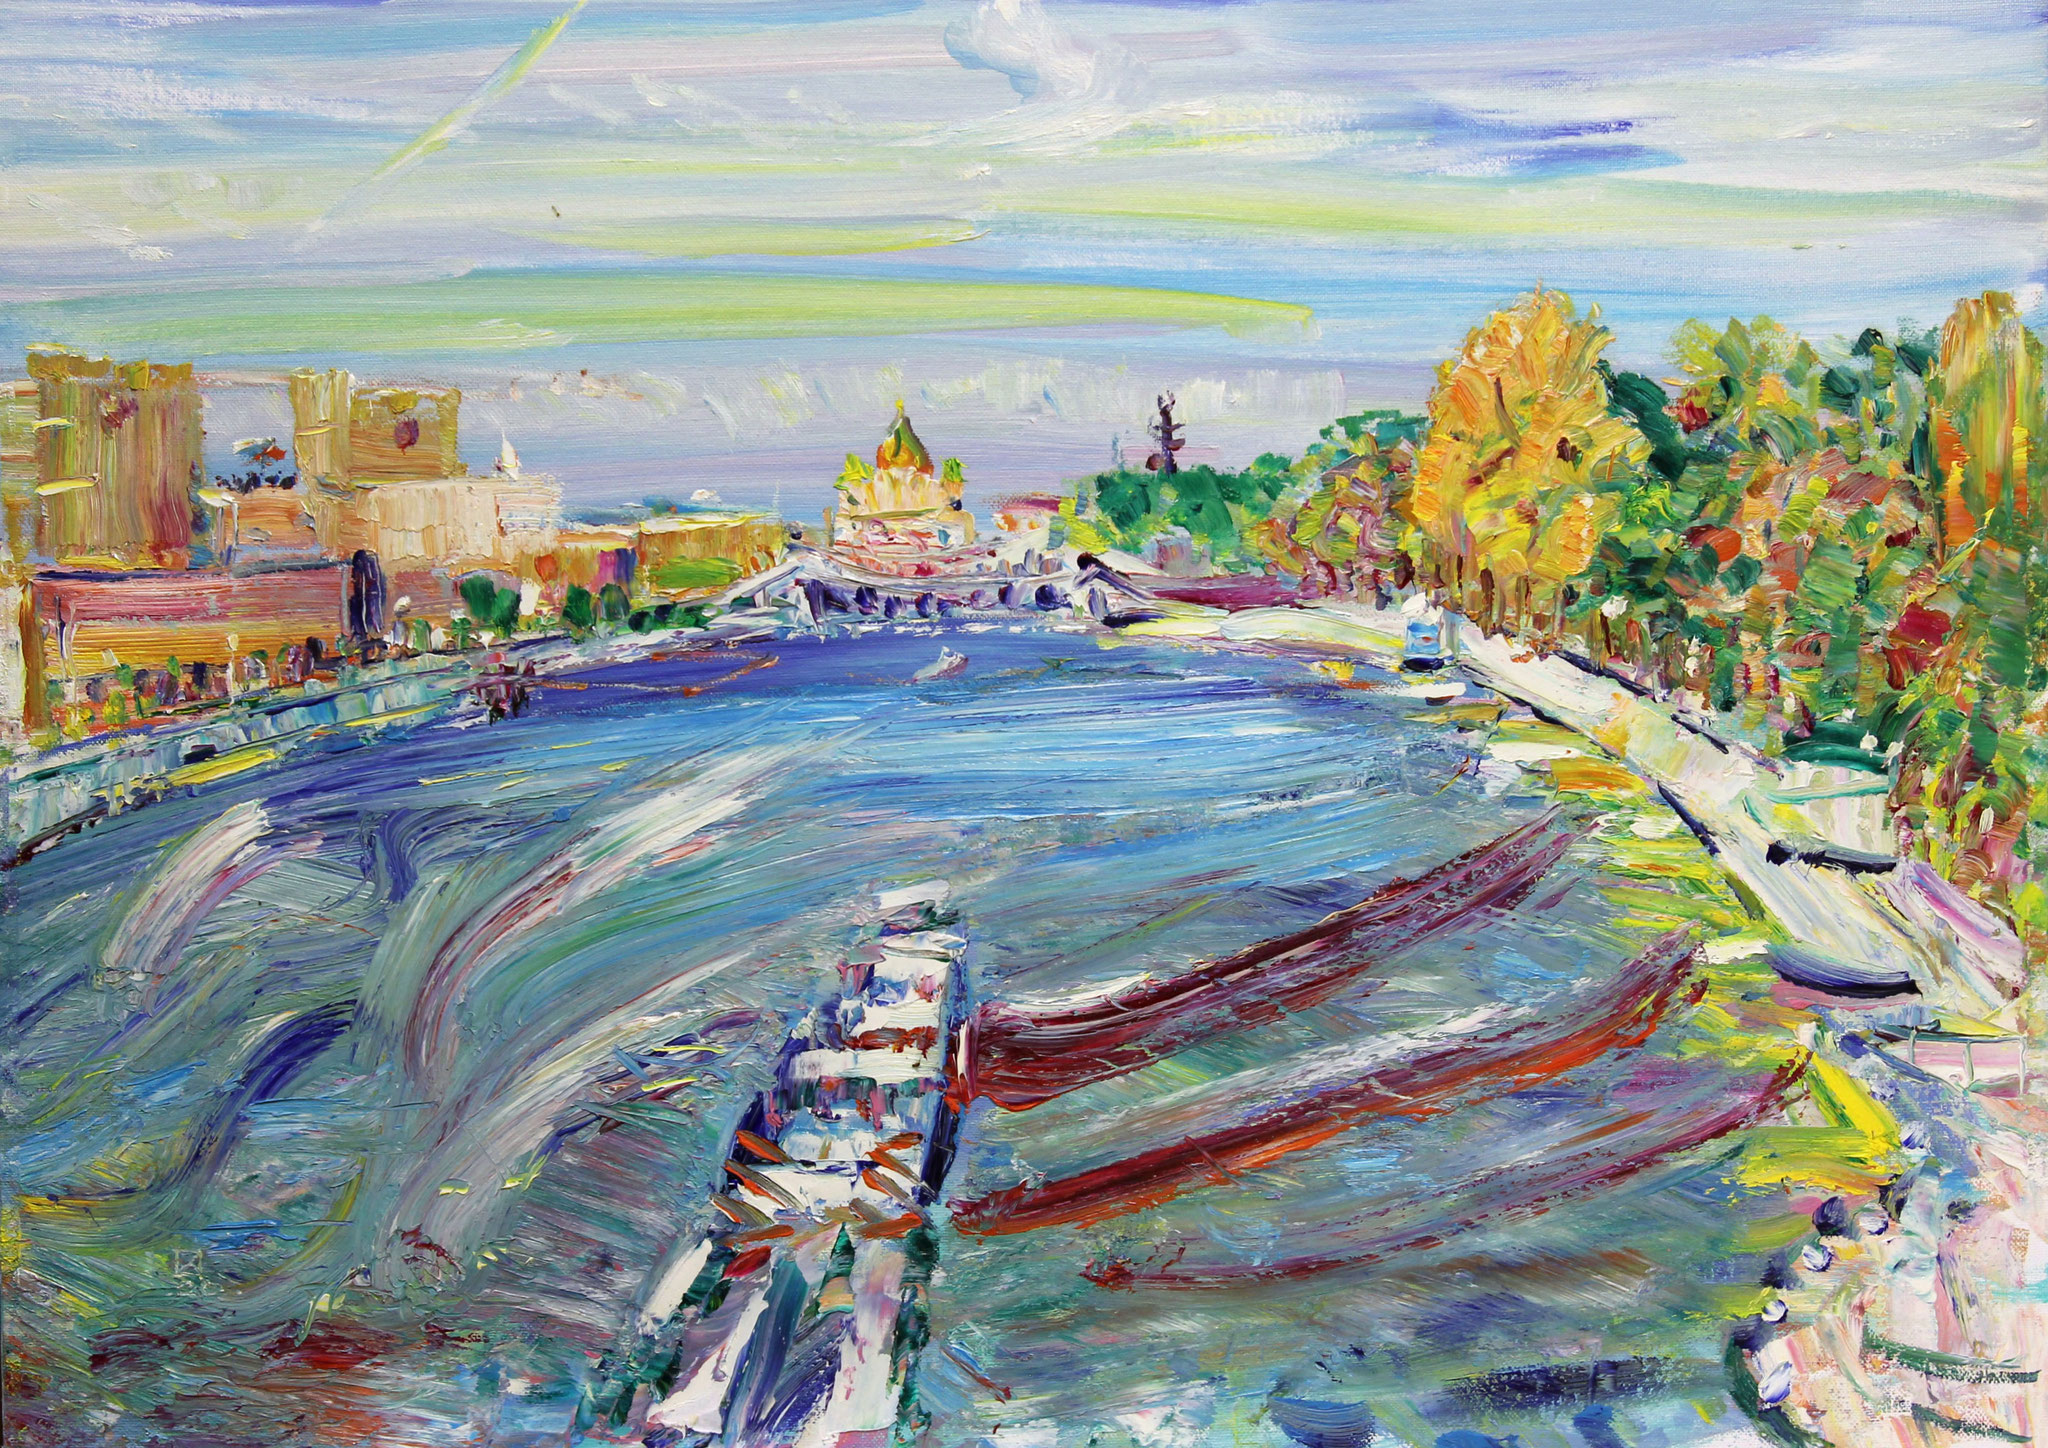 Moscow River. 2020. Oil on cardboard. 50 x 70